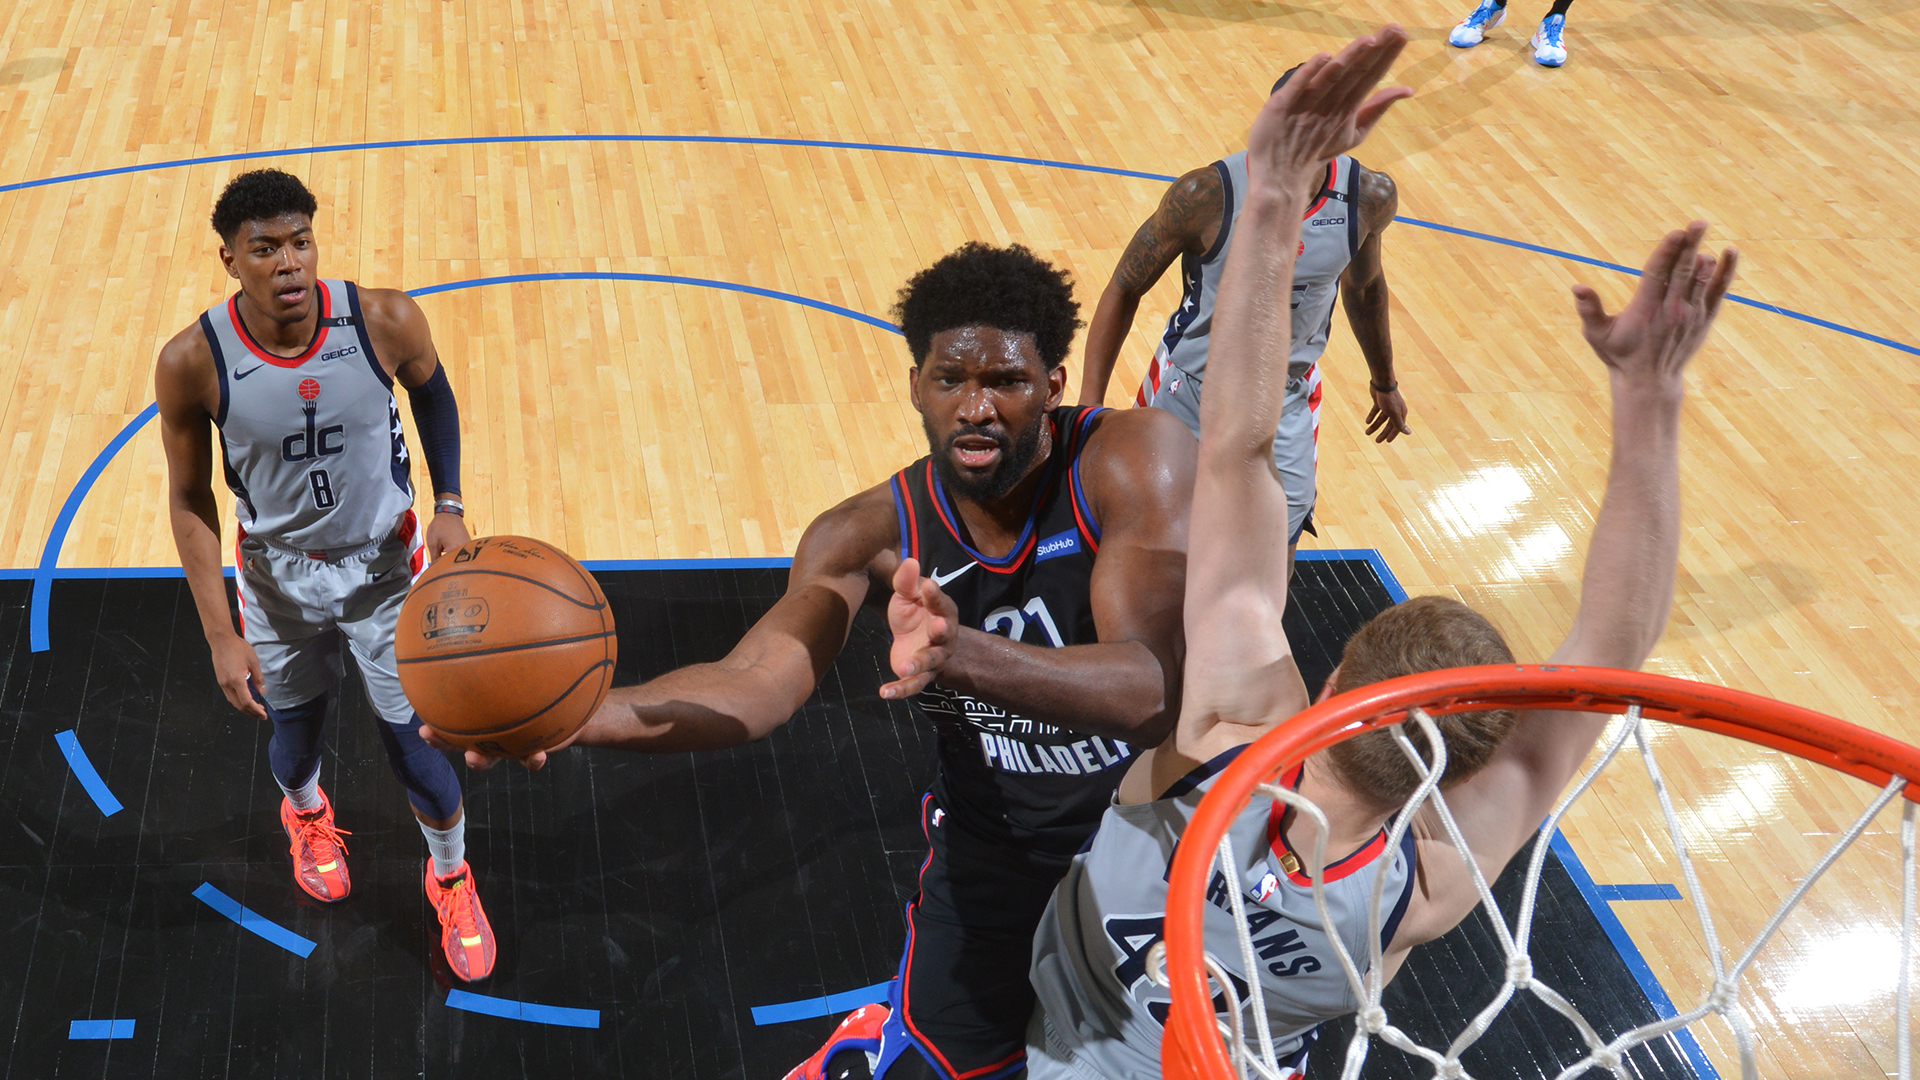 Sixers' offense continues to click in Game 2 rout